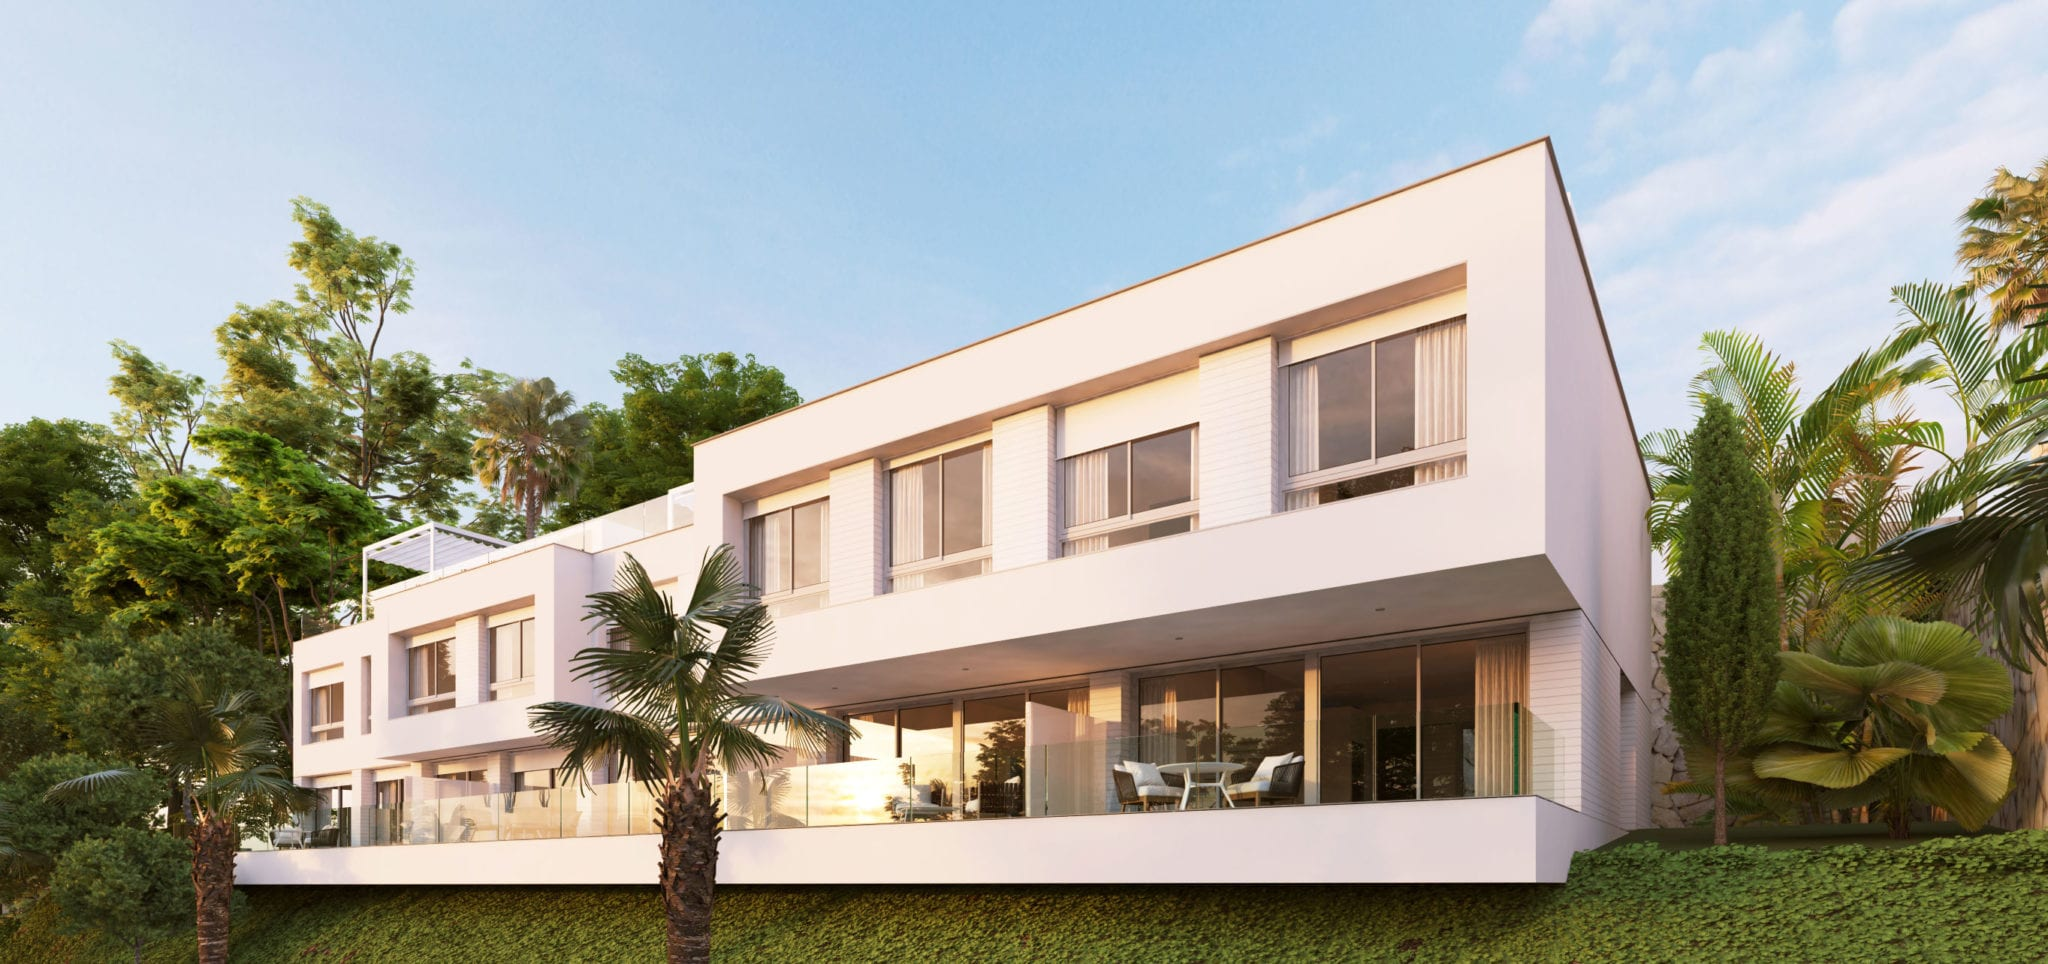 Townhouses with sea views in Cancelada.